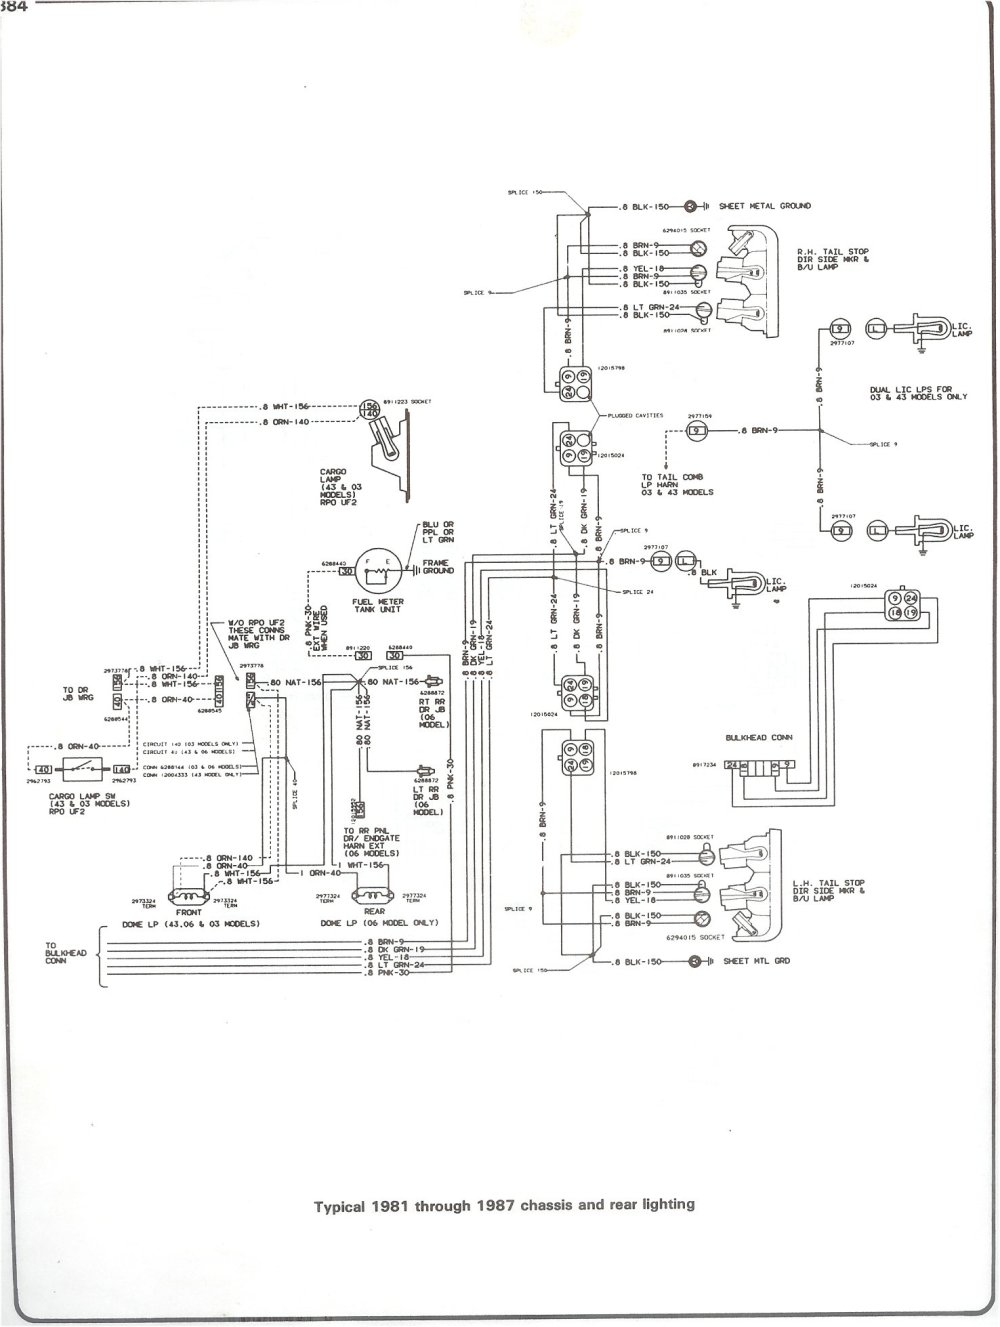 medium resolution of 87 cougar fuse diagram wiring diagram online trans am wiring diagram 1987 cougar wiring diagram